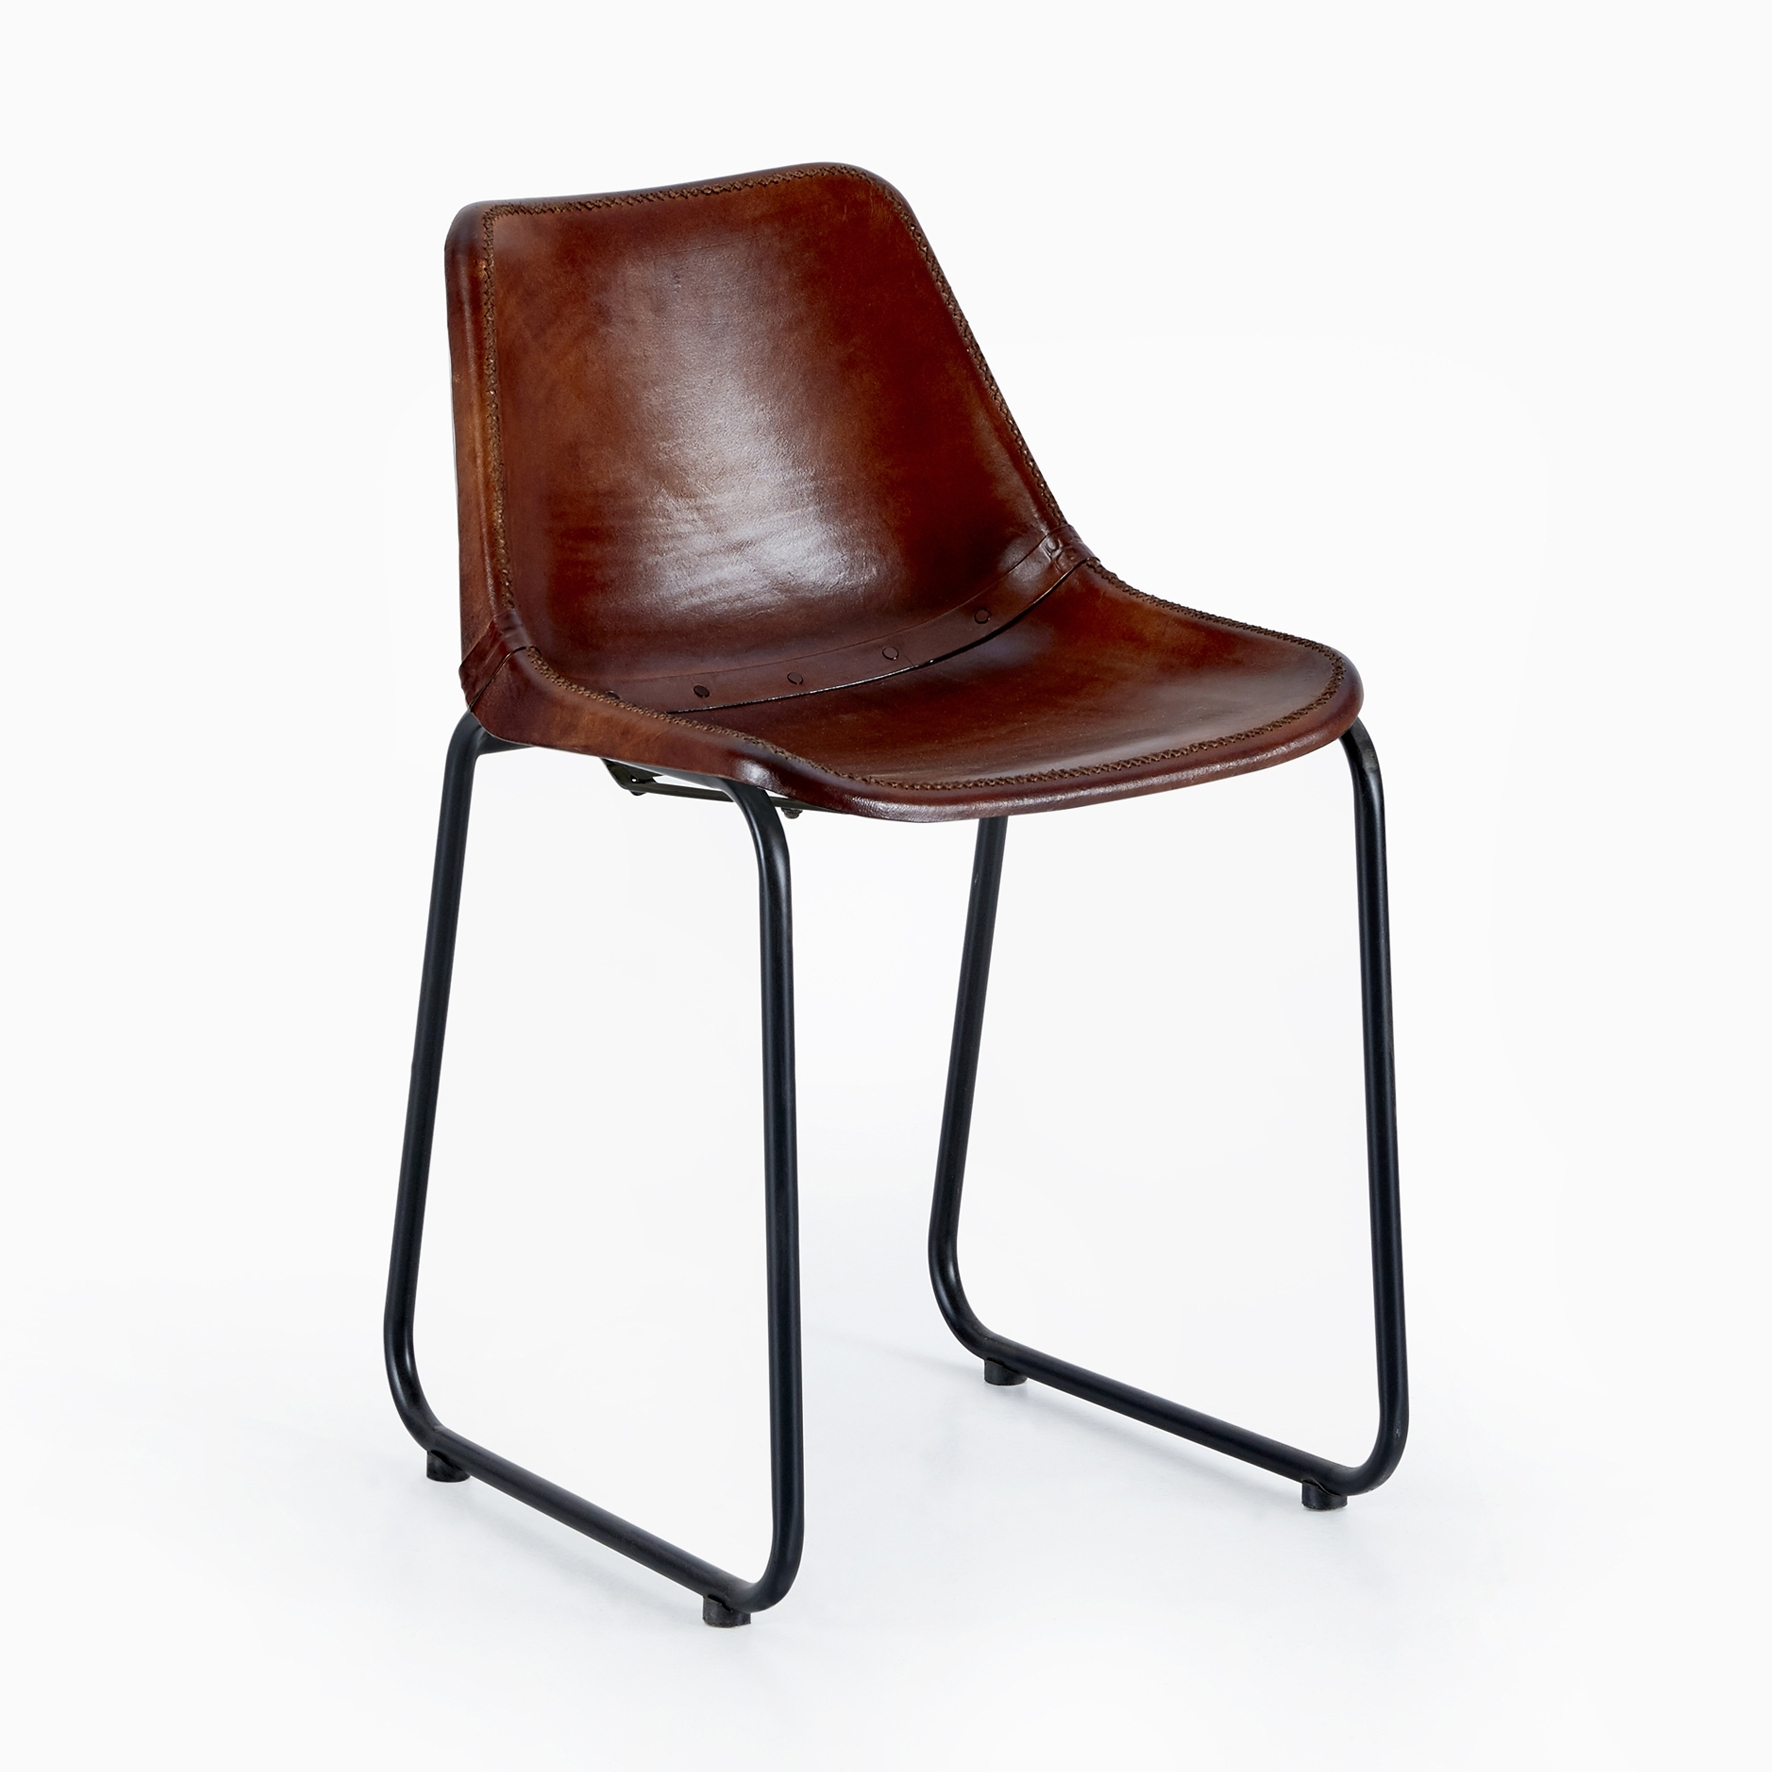 Most Current Brown Vintage Leather Bucket Chair – Heyl Interiors Within Brown Leather Dining Chairs (View 13 of 25)